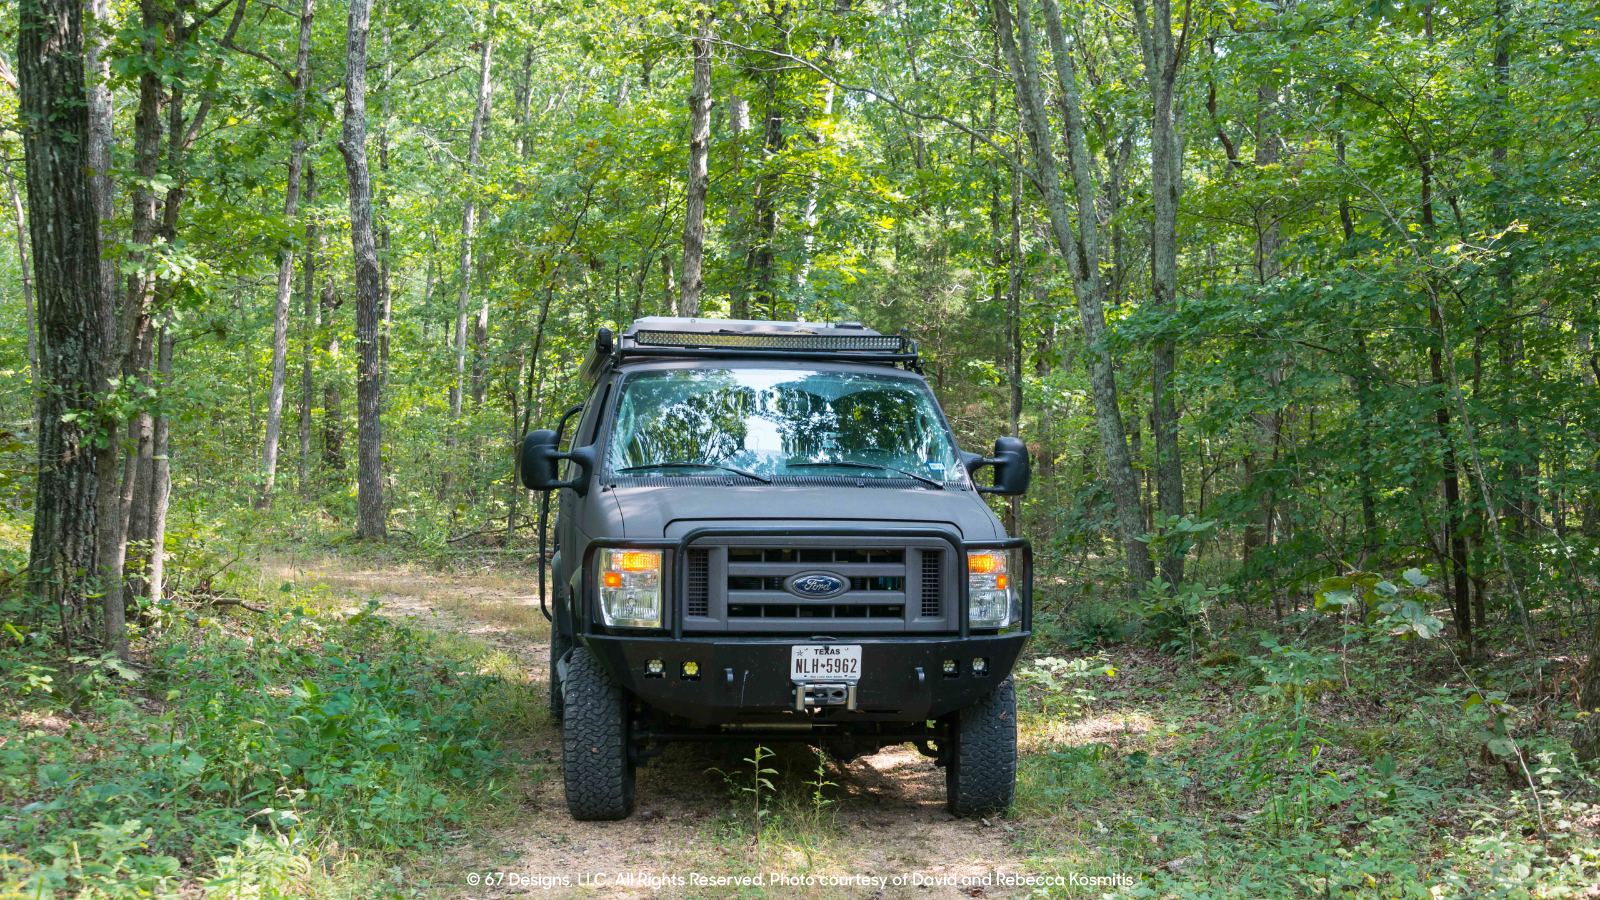 David and Rebecca's Ford through woods